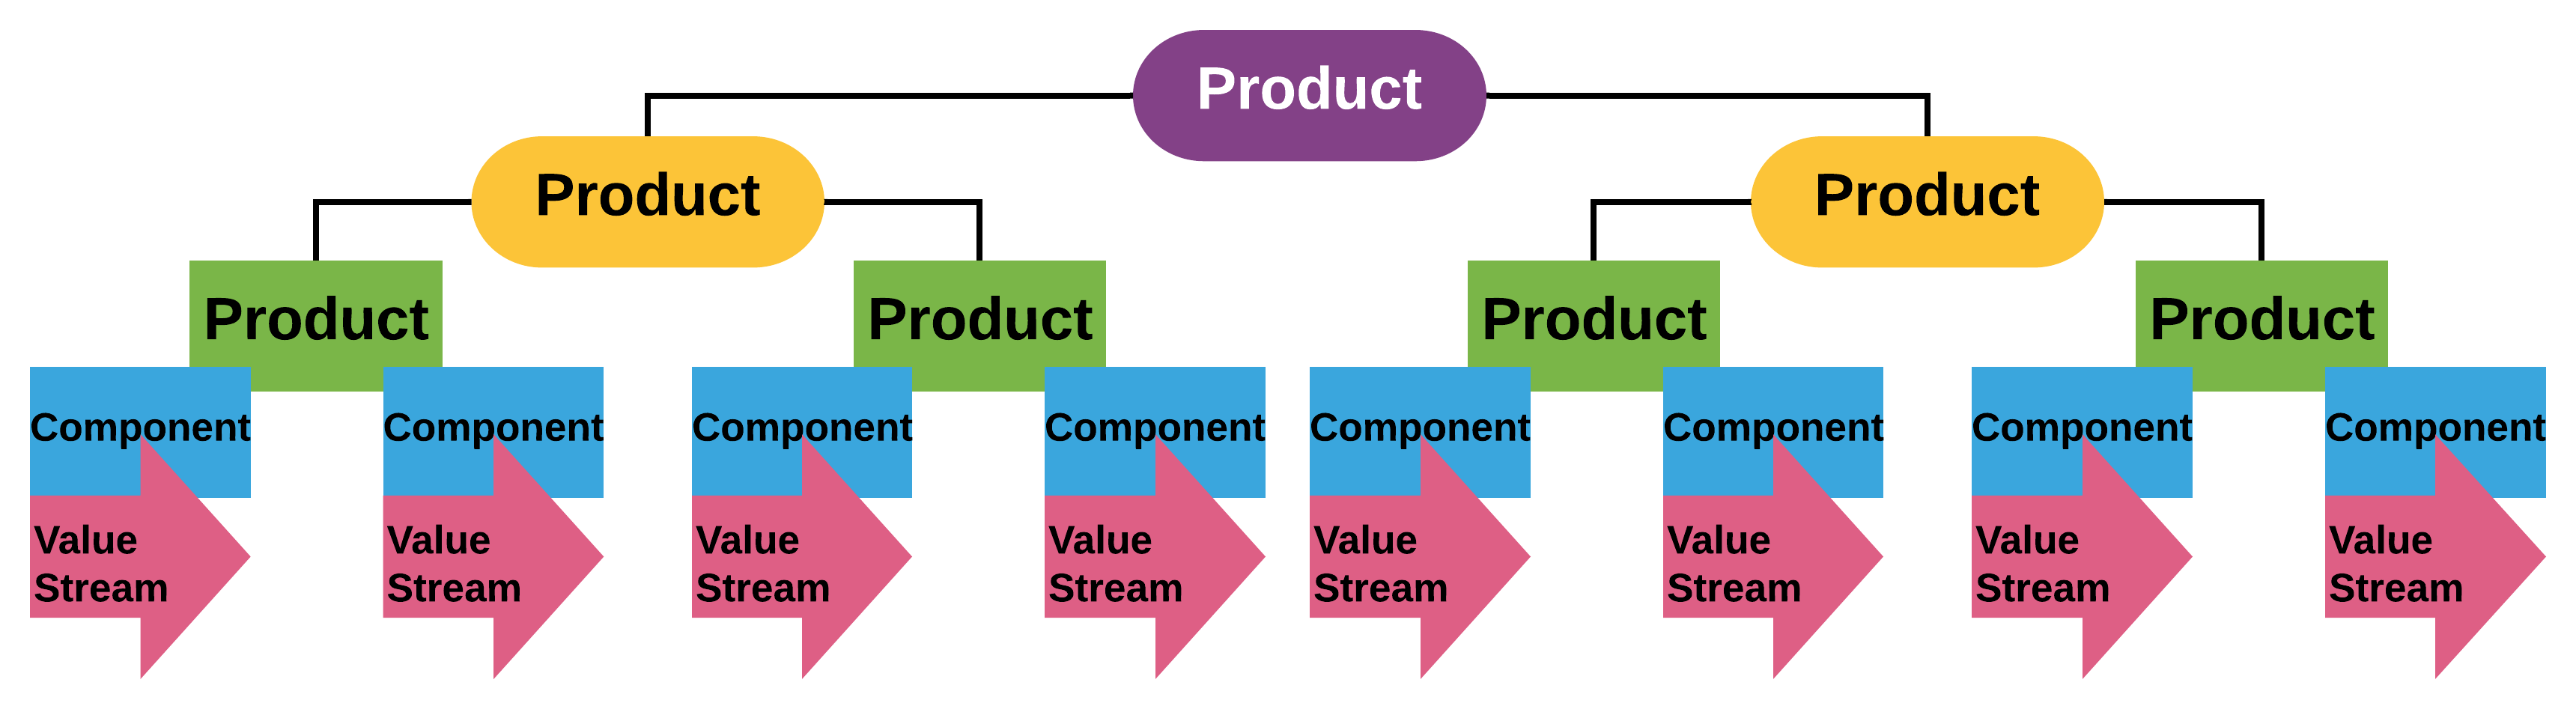 Product landscapes can be complex